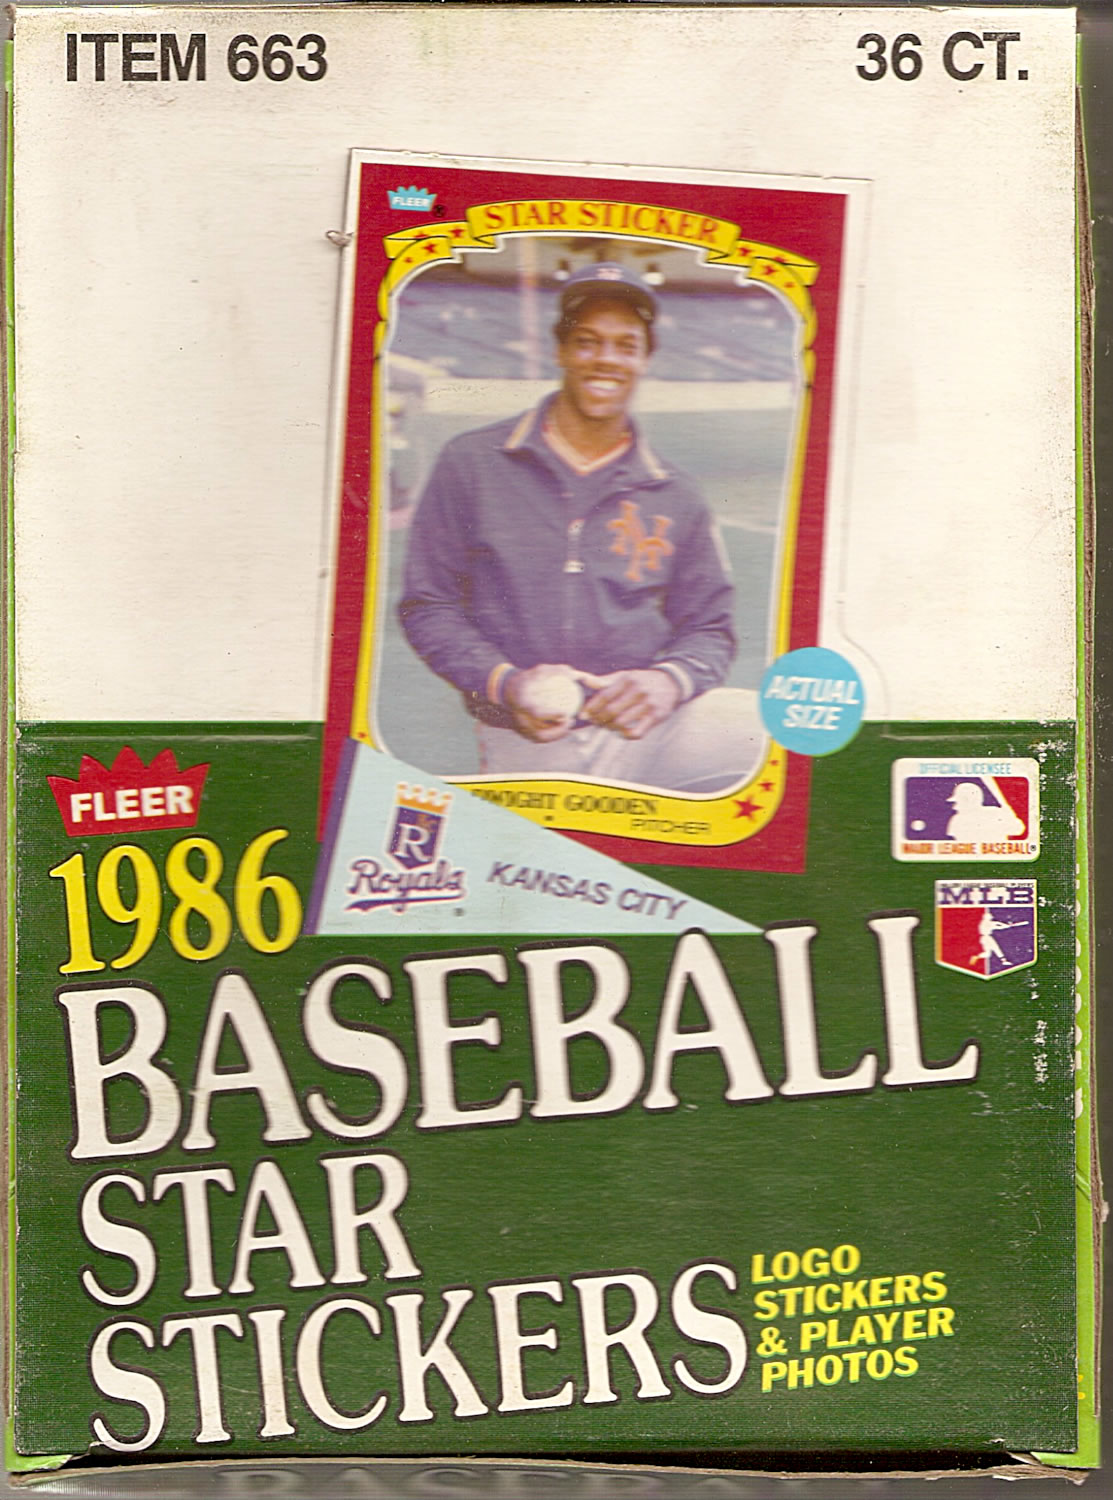 1986 FLEER BASEBALL STAR STICKERS BOX